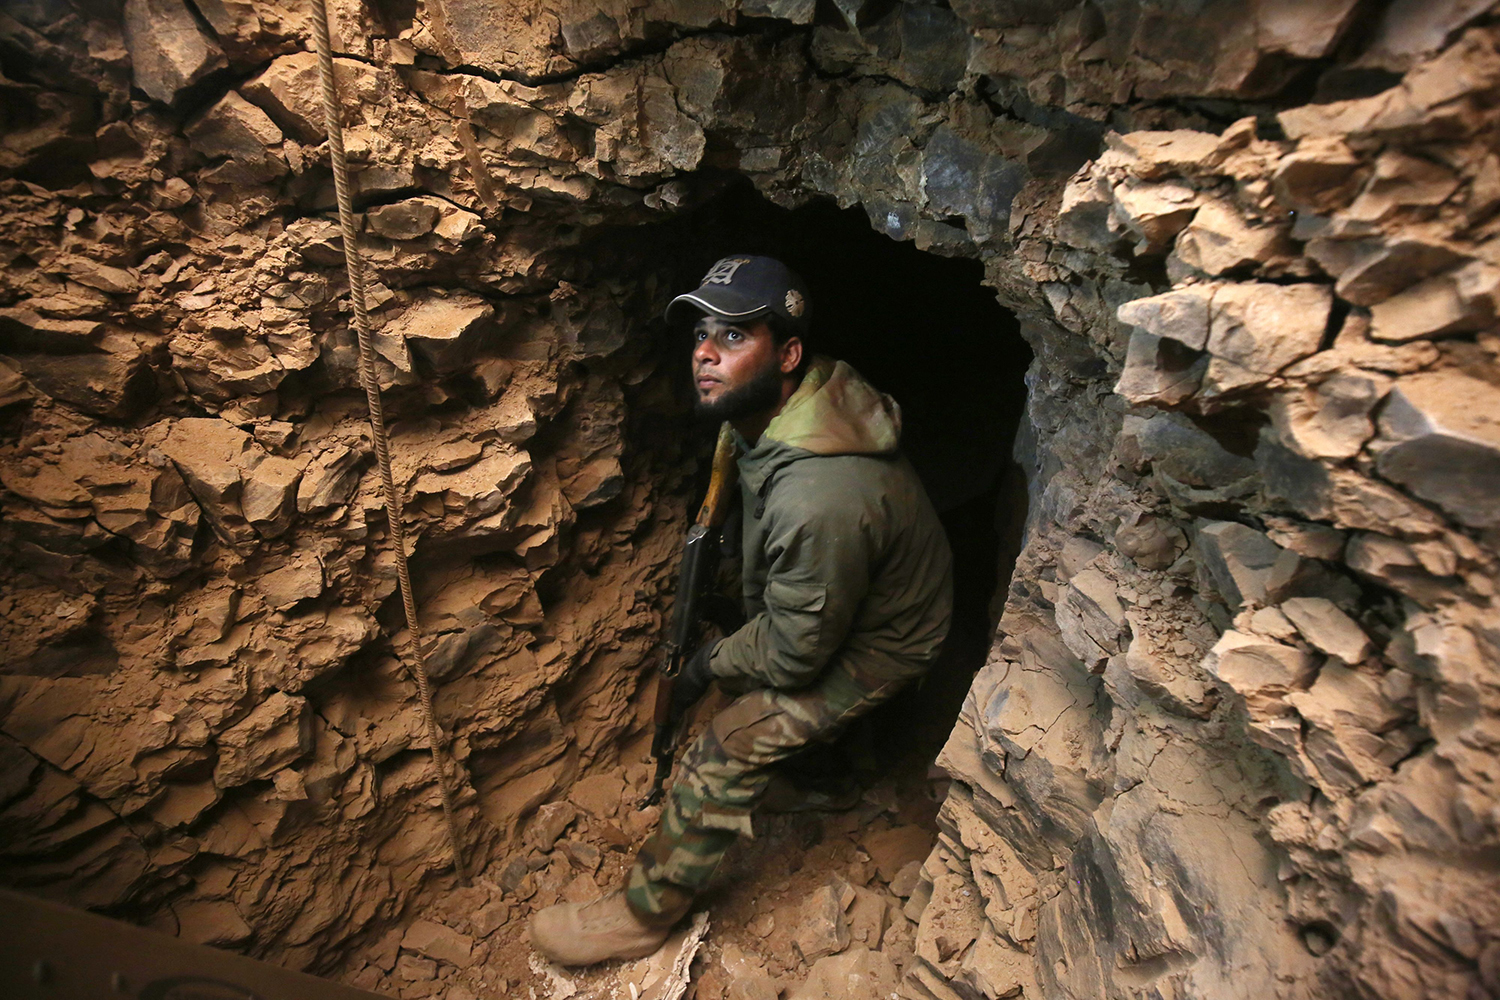 TOPSHOT - An Iraqi Shiite fighter from the Hashed al-Shaabi (Popular Mobilisation) paramilitary forces inspects an underground tunnel in the town of Tal Abtah, south of Tal Afar, on December 10, 2016, after they retook the area during a broad offencive to retake the city of Mosul from Islamic State (IS) jihadists. Hashed al-Shaabi (Popular Mobilisation) paramilitary forces have made progress in recent weeks on a western front targeting Tal Afar town on the road linking Mosul to Syria. On December 8, 2016, the paramilitary forces were clearing Tal Abtah of bombs and booby traps after a fierce, days-long fight to retake it. / AFP PHOTO / AHMAD AL-RUBAYE / TT / kod 444